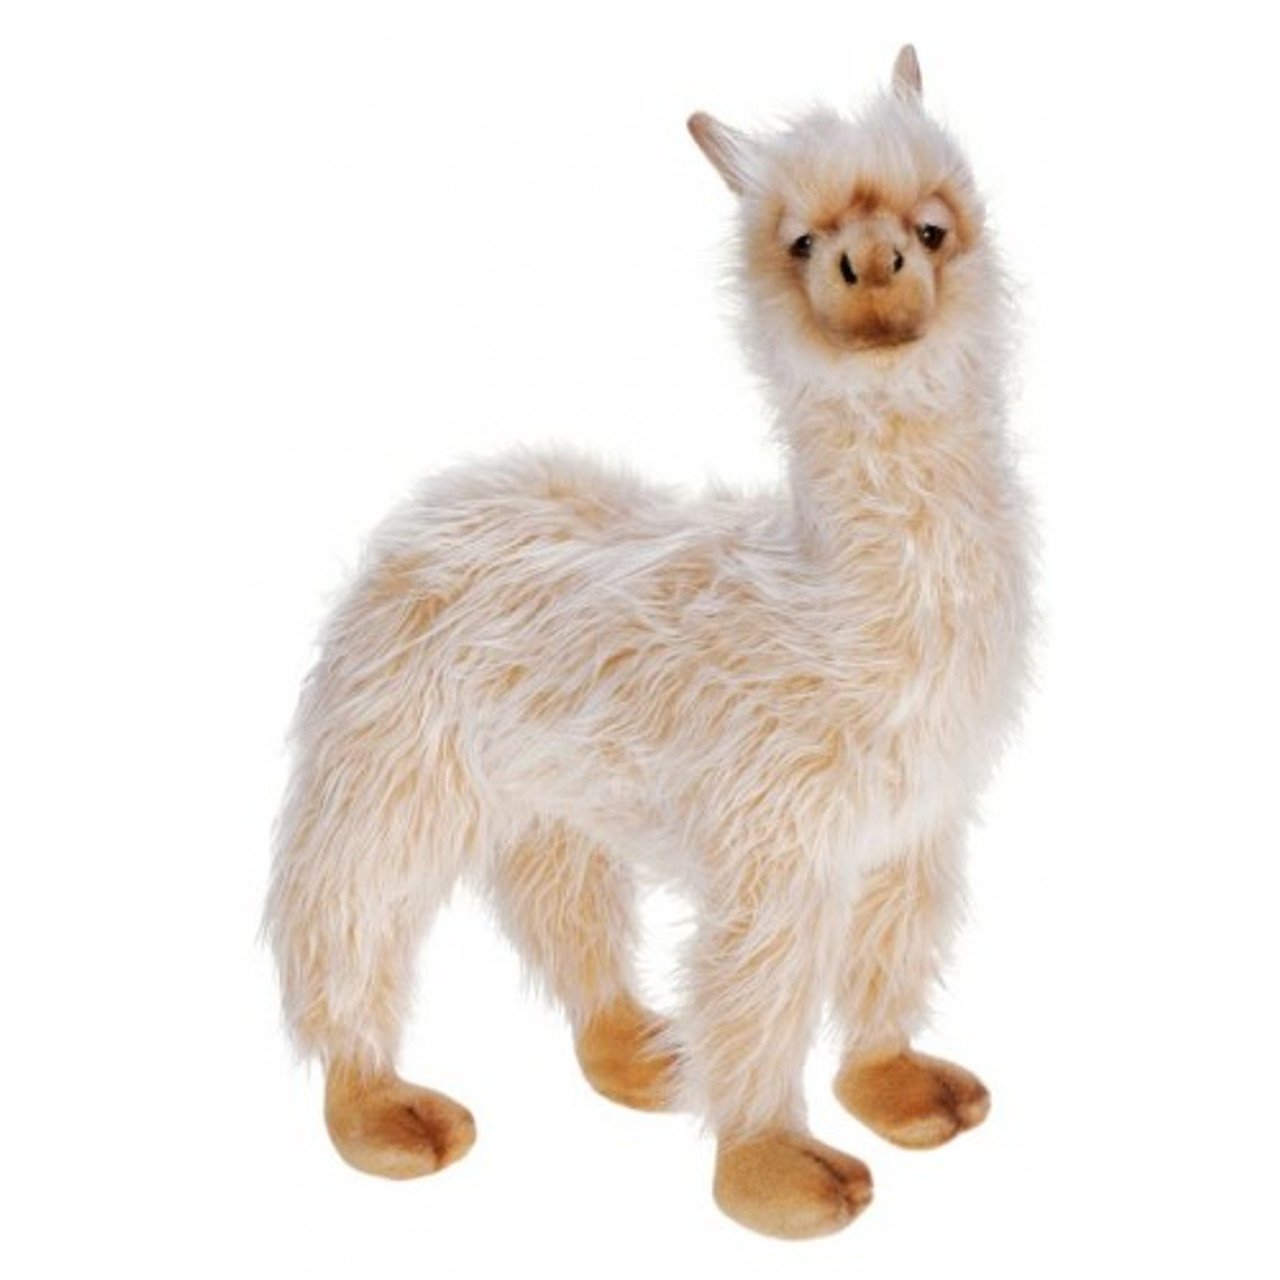 Set Of 2 Lifelike Handcrafted Extra Soft Plush Llama Stuffed Animals